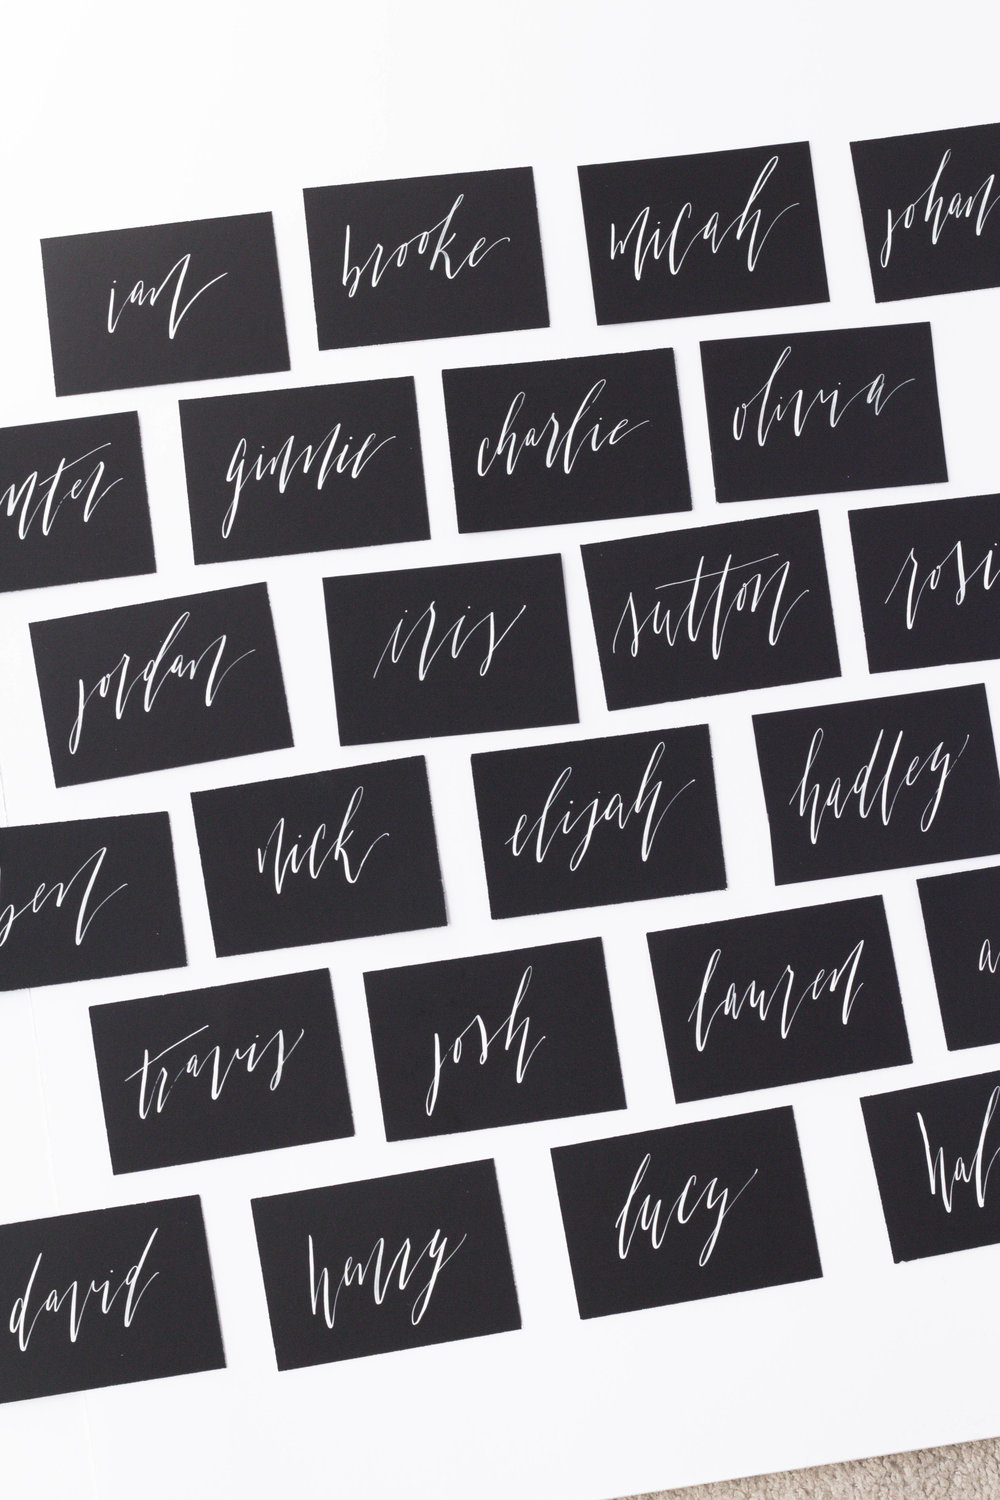 Black Place Cards with White Ink Calligraphy - Organic and Raw Edgy Wedding Details - True North Paper Co.